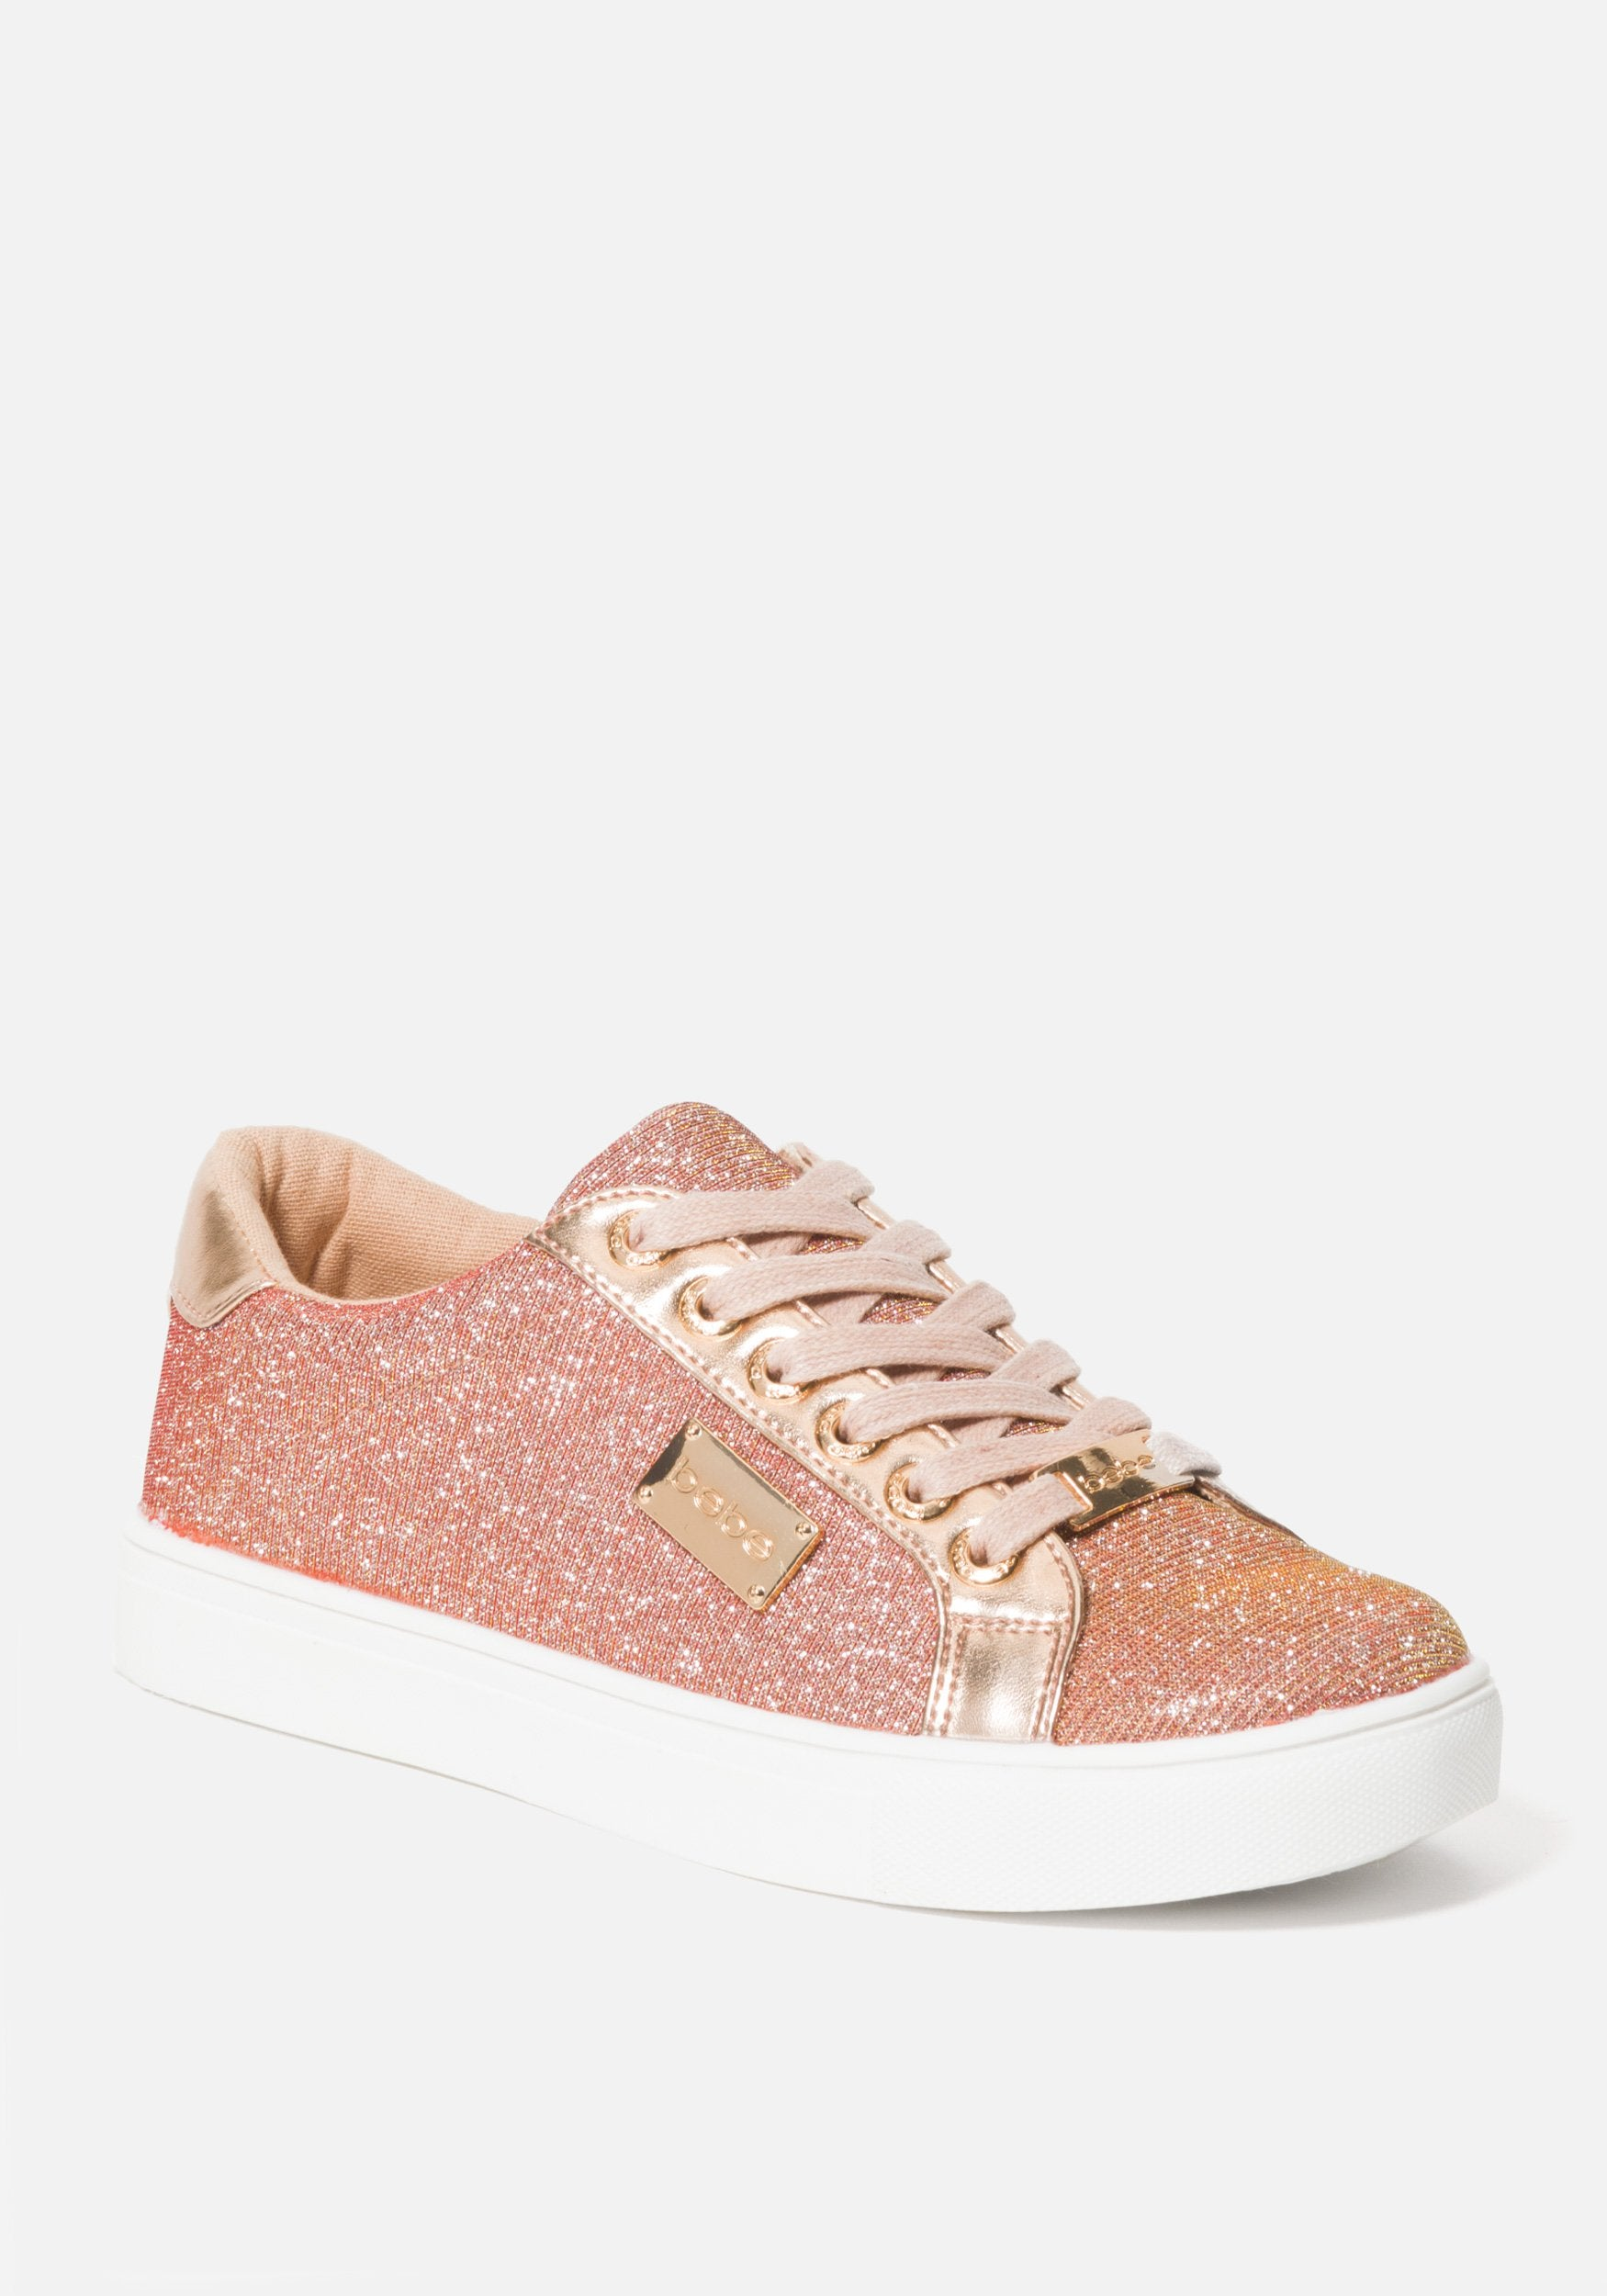 Bebe Women's Calais Platform Sneakers, Size 6 in ROSE GOLD MESH Synthetic